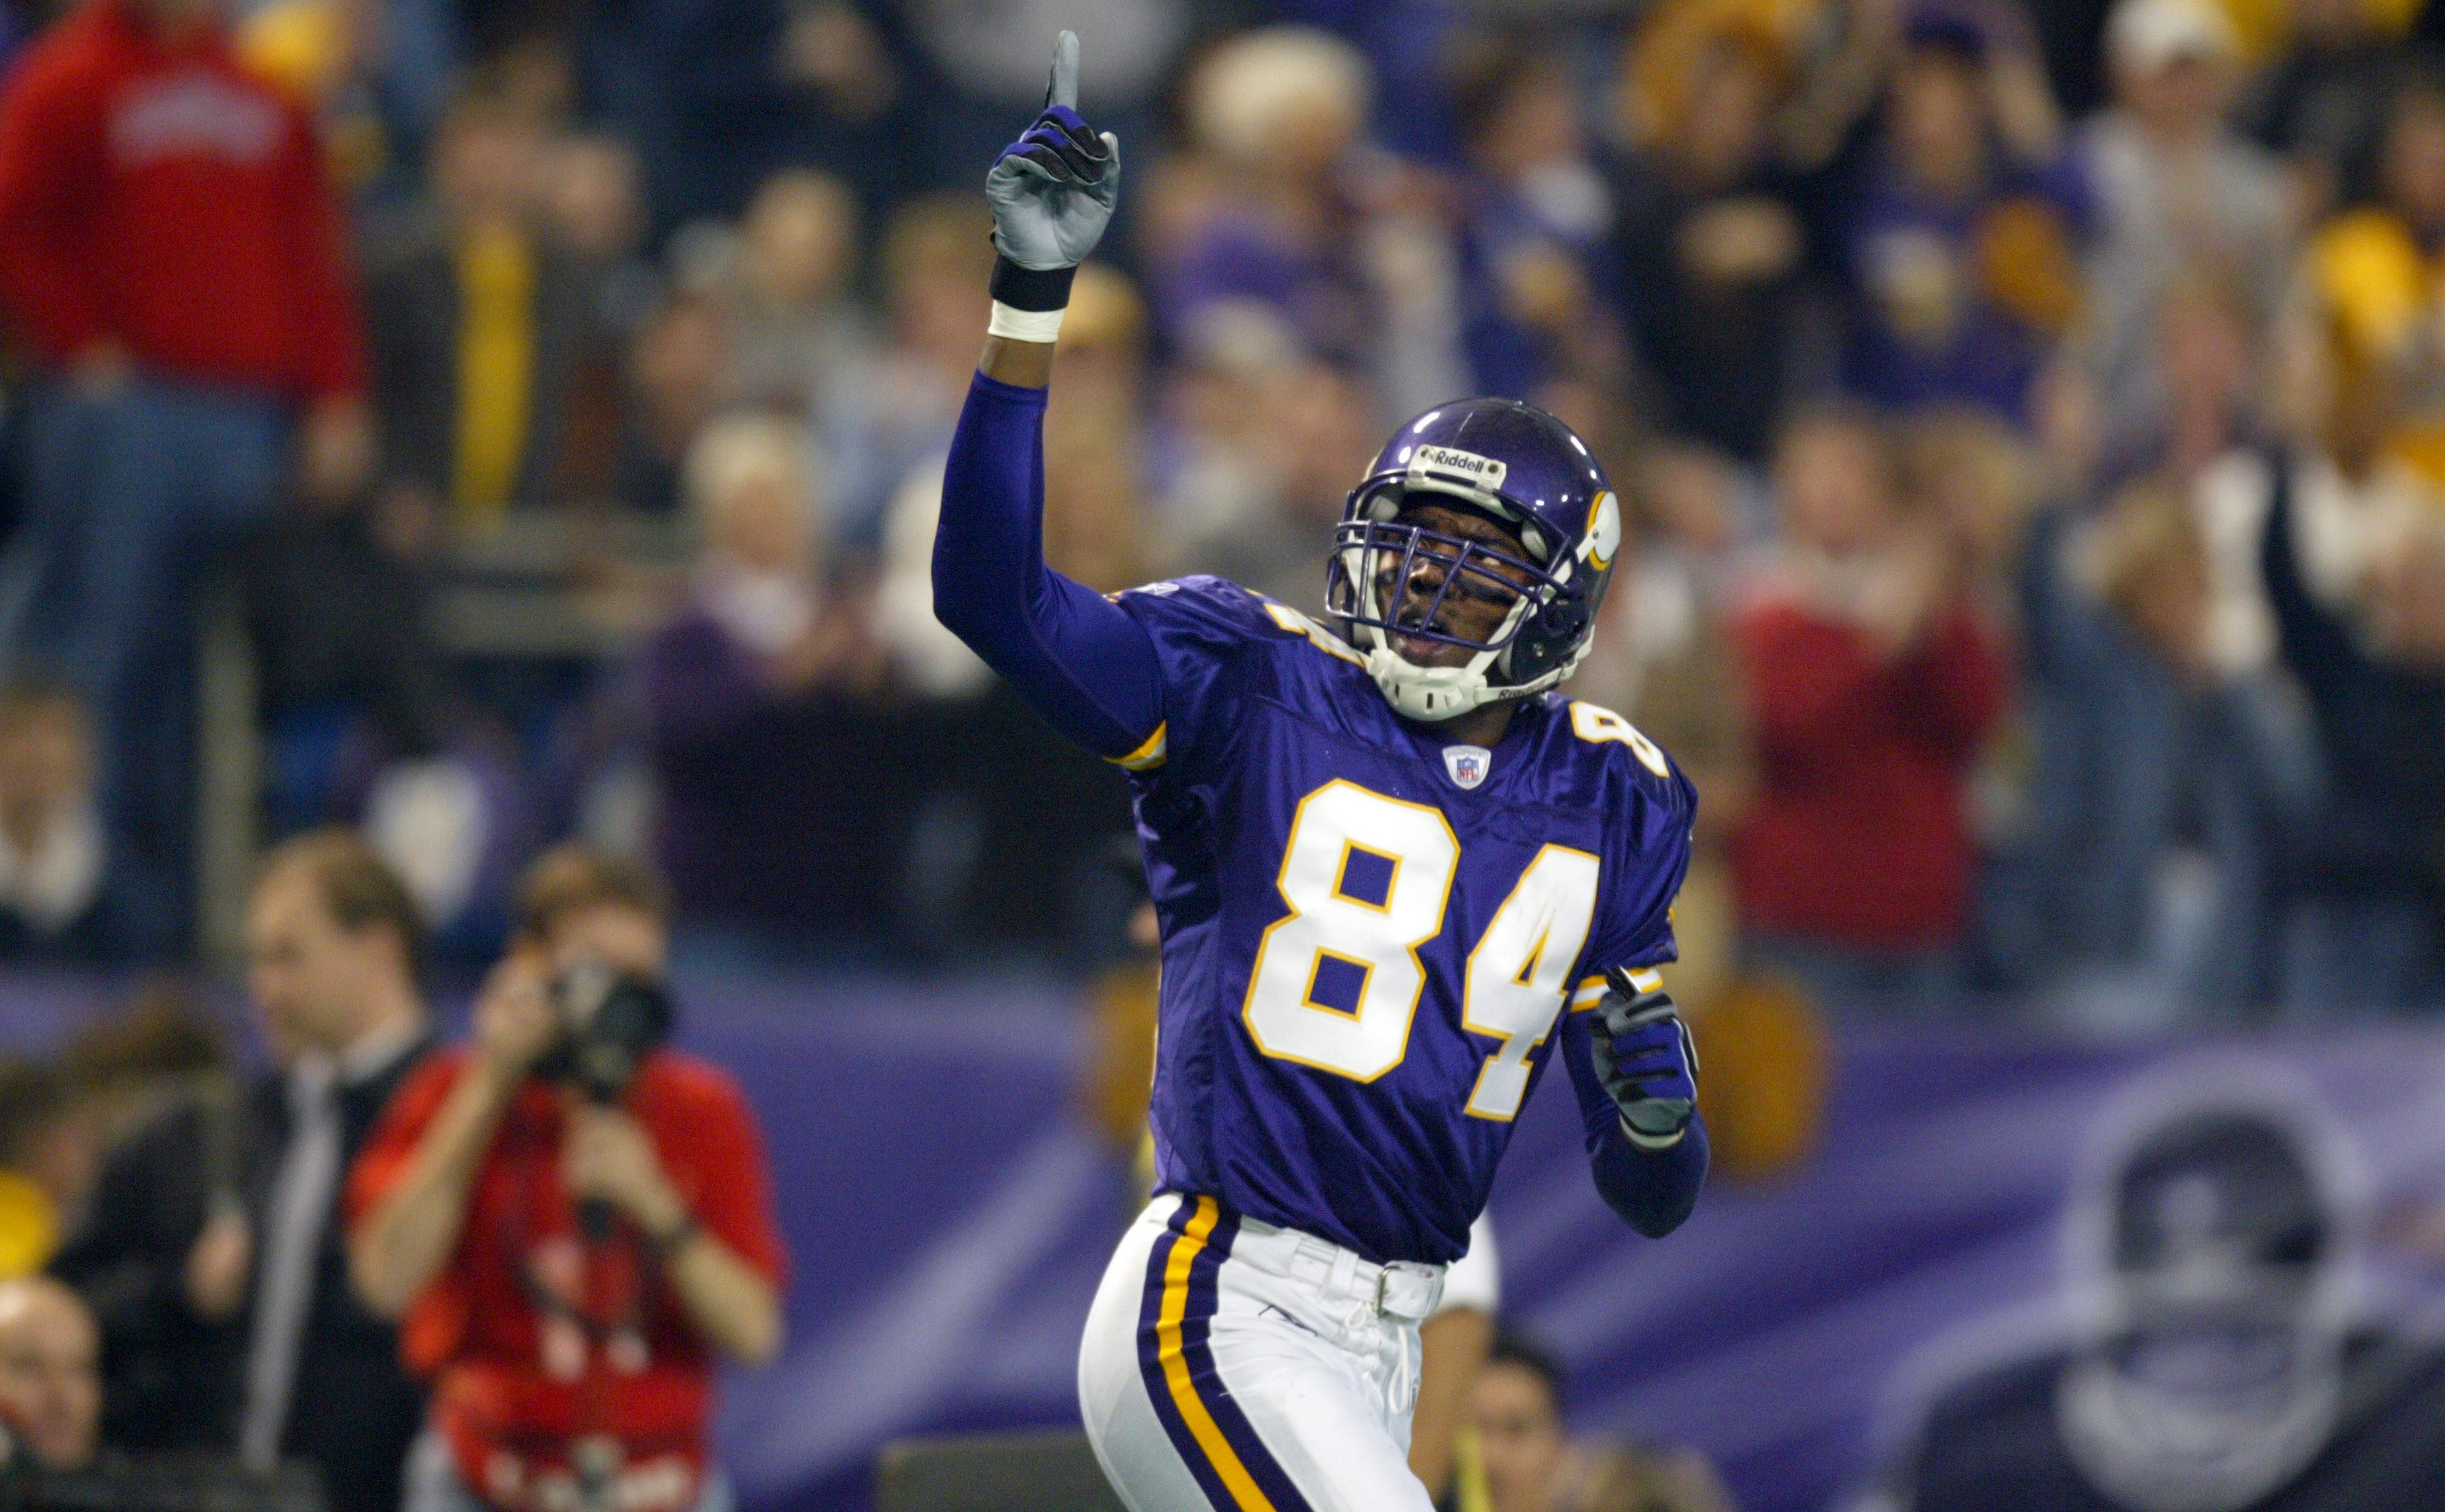 Res: 2453x1517, Randy Moss Wallpapers